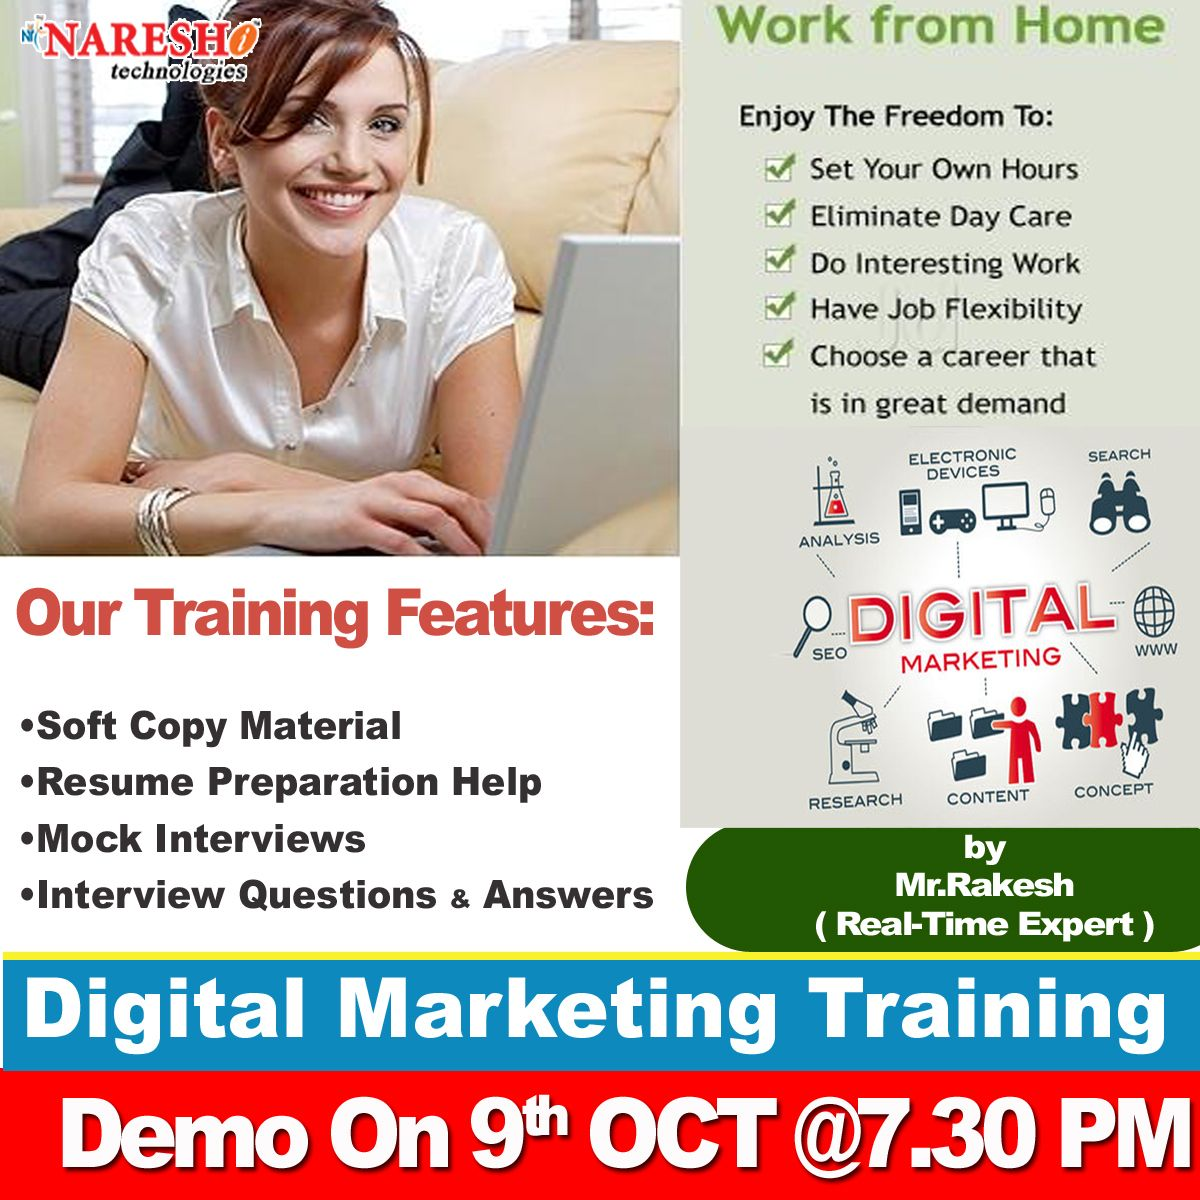 Even if you're past y. Attend Free Demo On Digital Marketing On 9th Oct @7:30PM ...